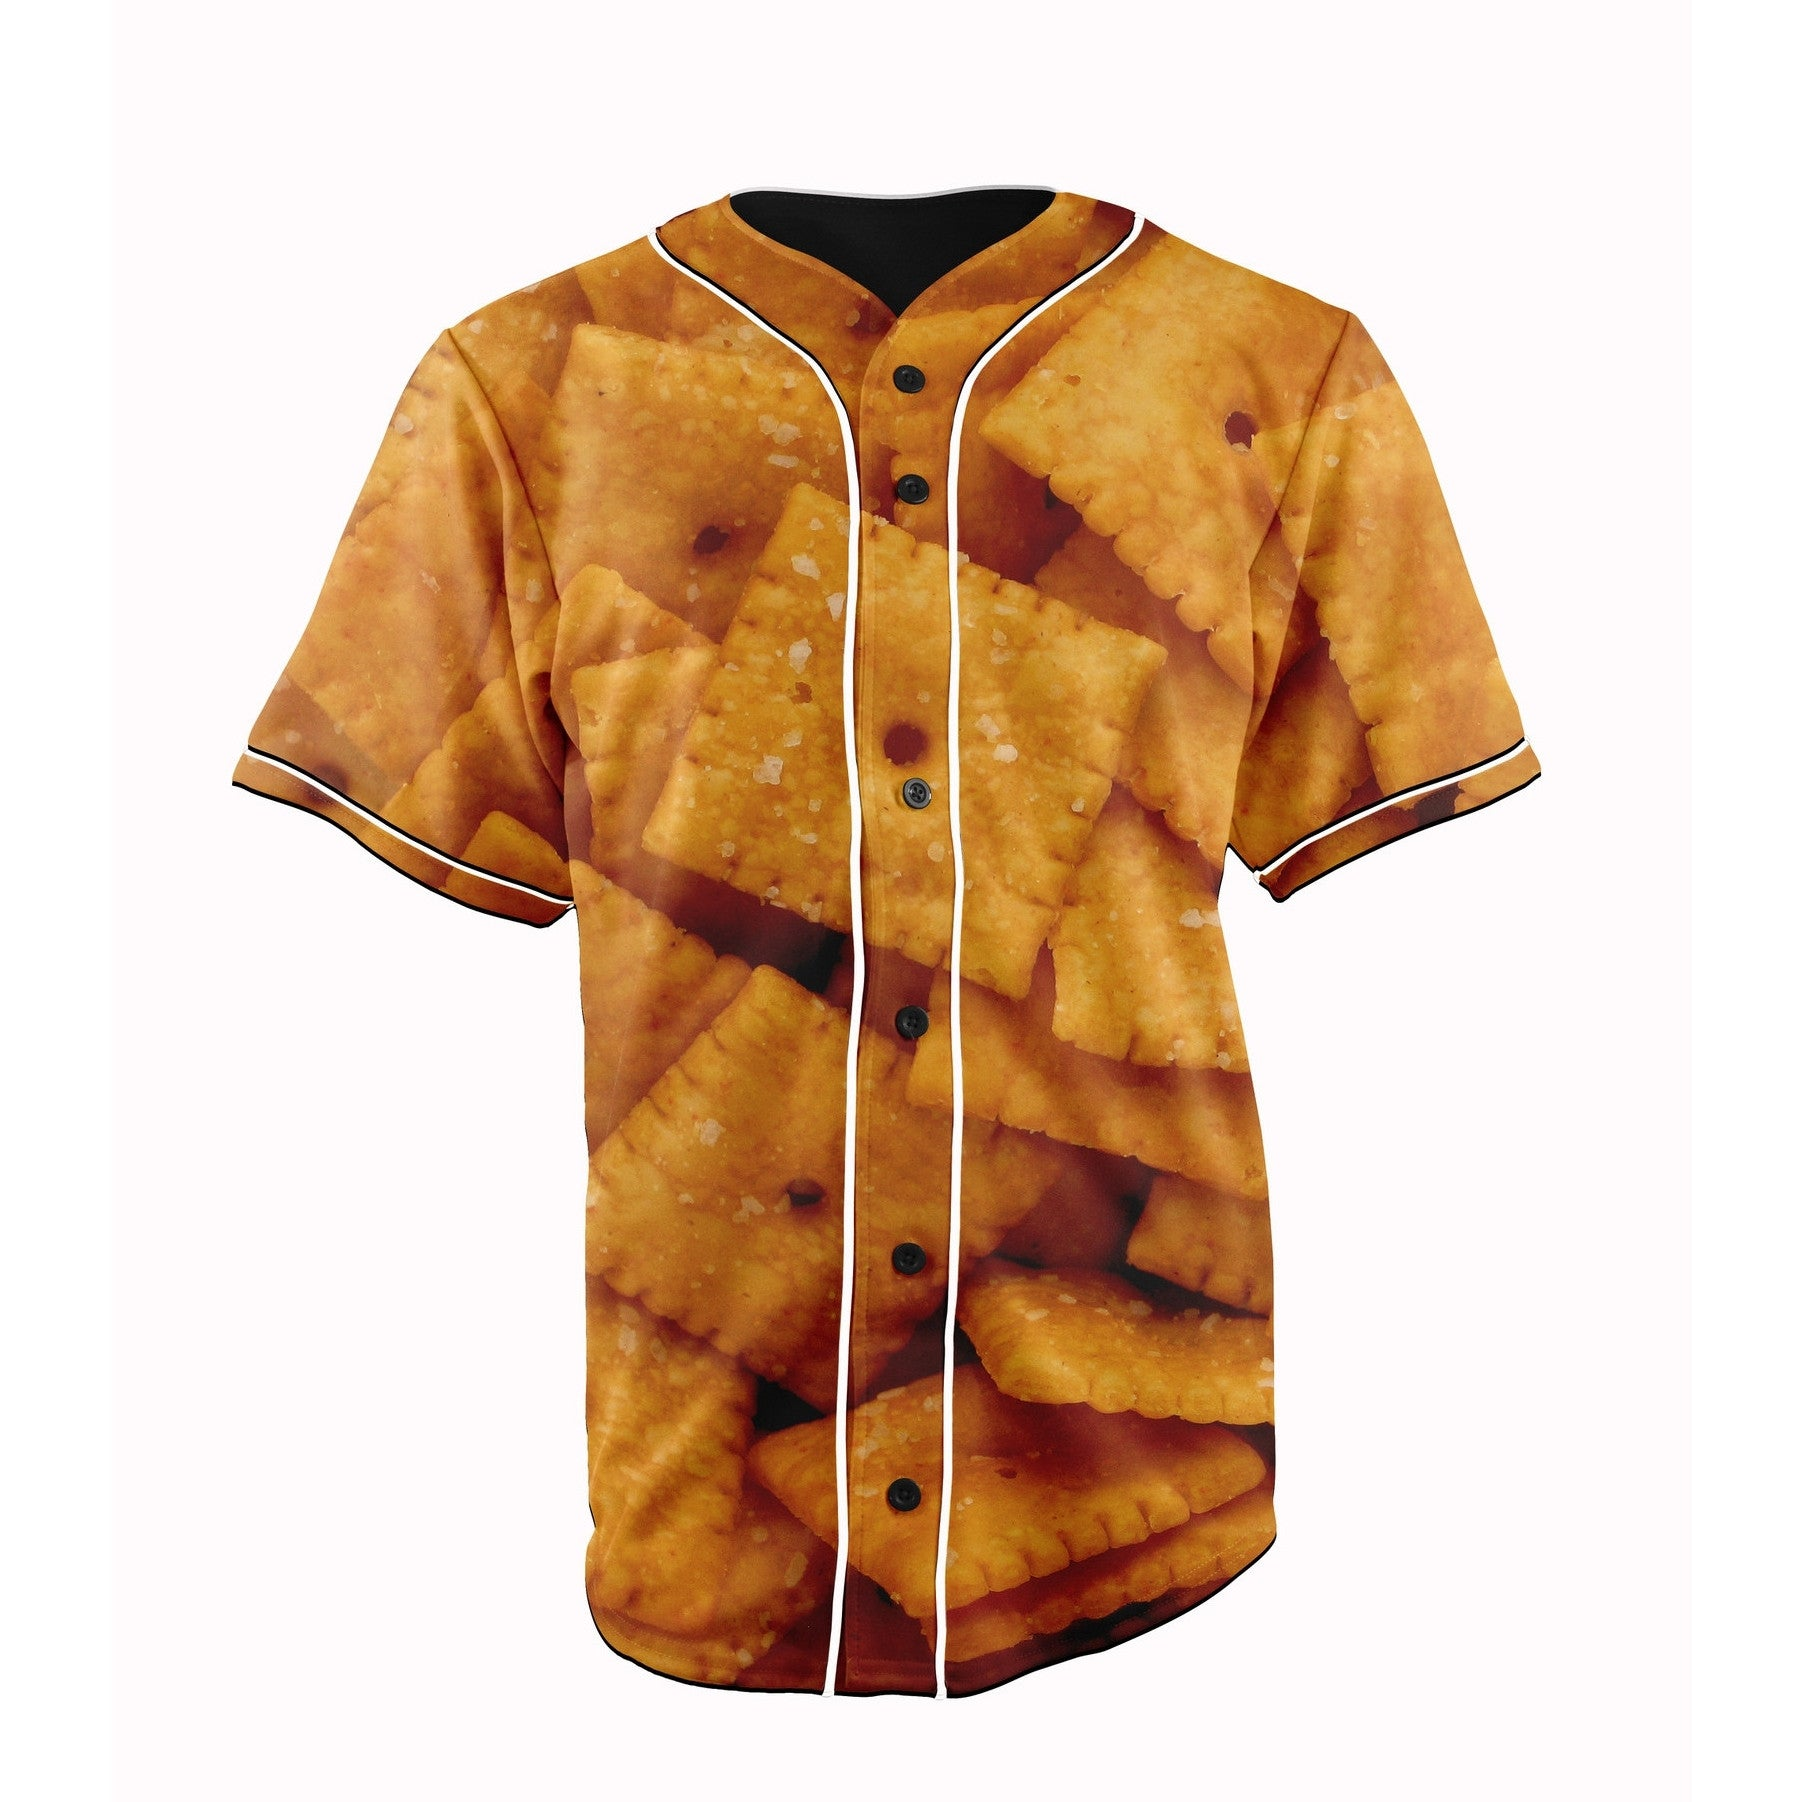 Cheez-It's Jersey